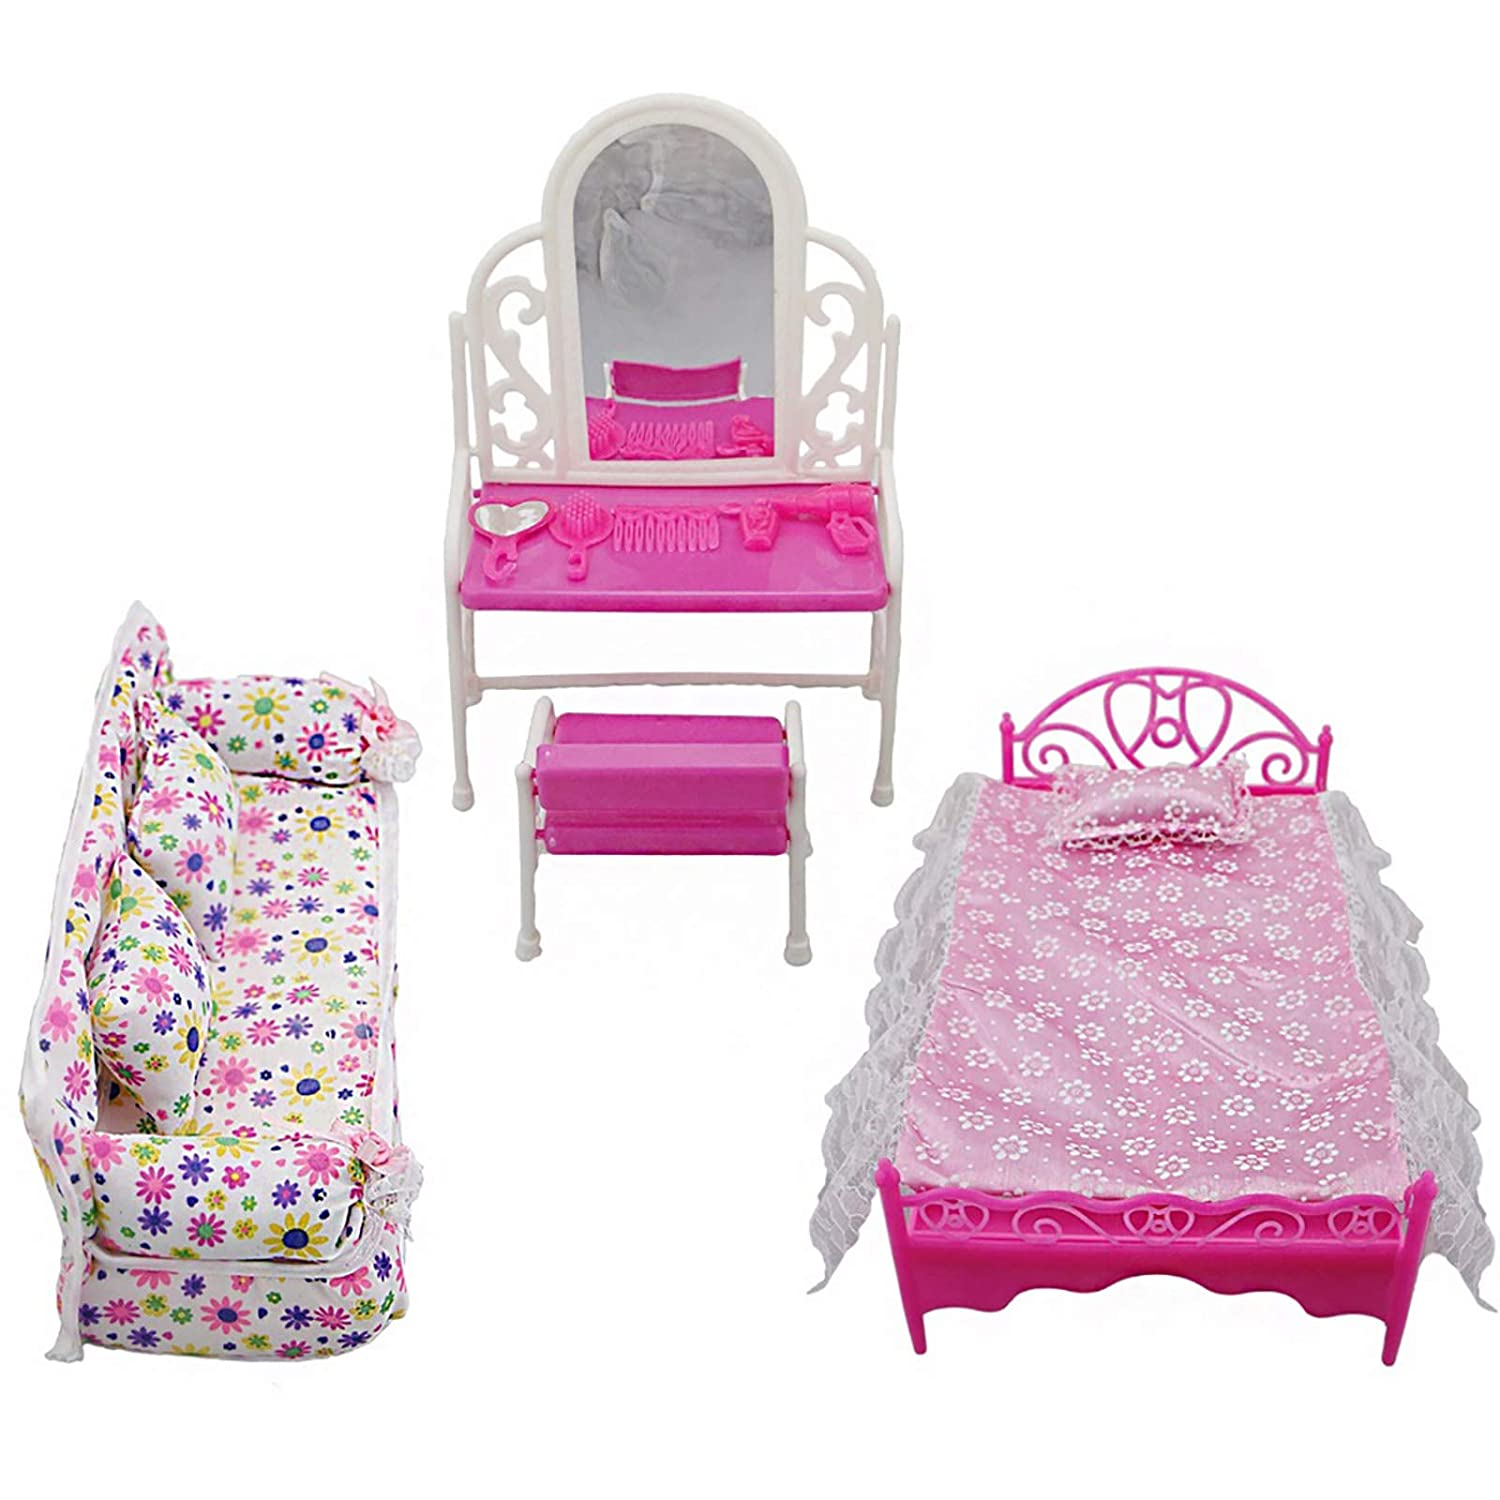 iFCOW Mini Princess Furniture Accessories Kids Gift 1xDresser Set + 1x Sofa Set+1xBed Set + 5X Hangers for Barbie Doll 8 Items/lot